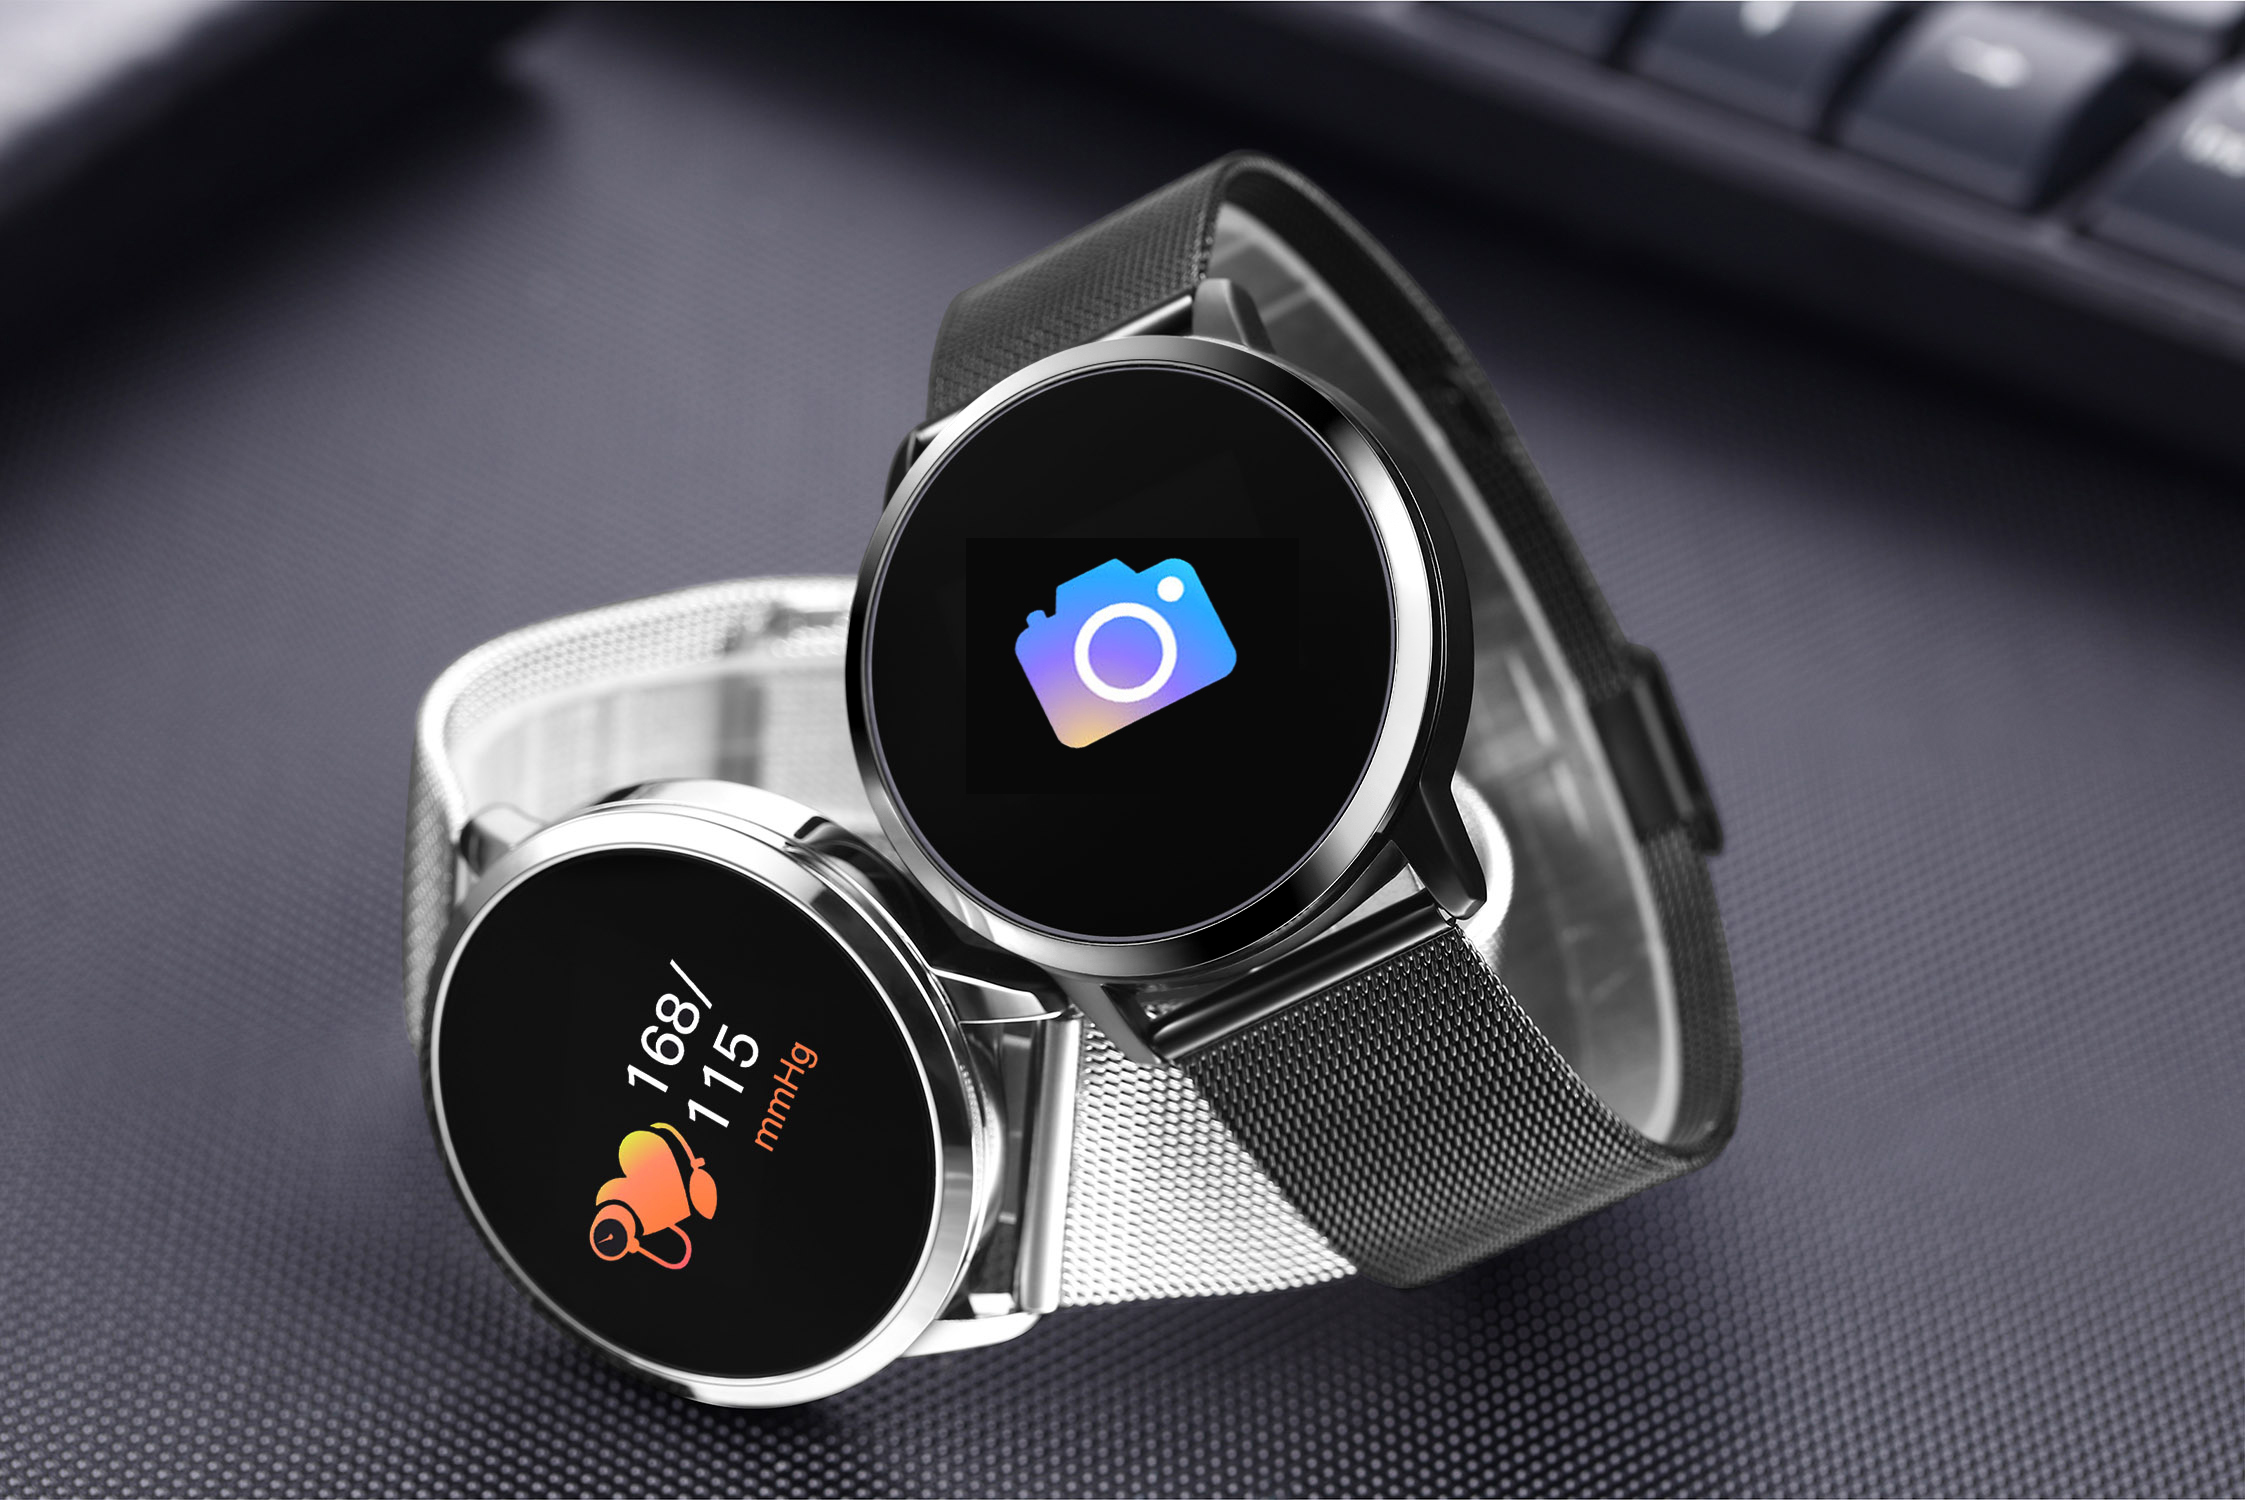 Q8 Hot On Alibaba Amazon Similar to K88h Smart Watch Fitness Tracker Wristband Blood Pressure Meter Watch Android Made in China